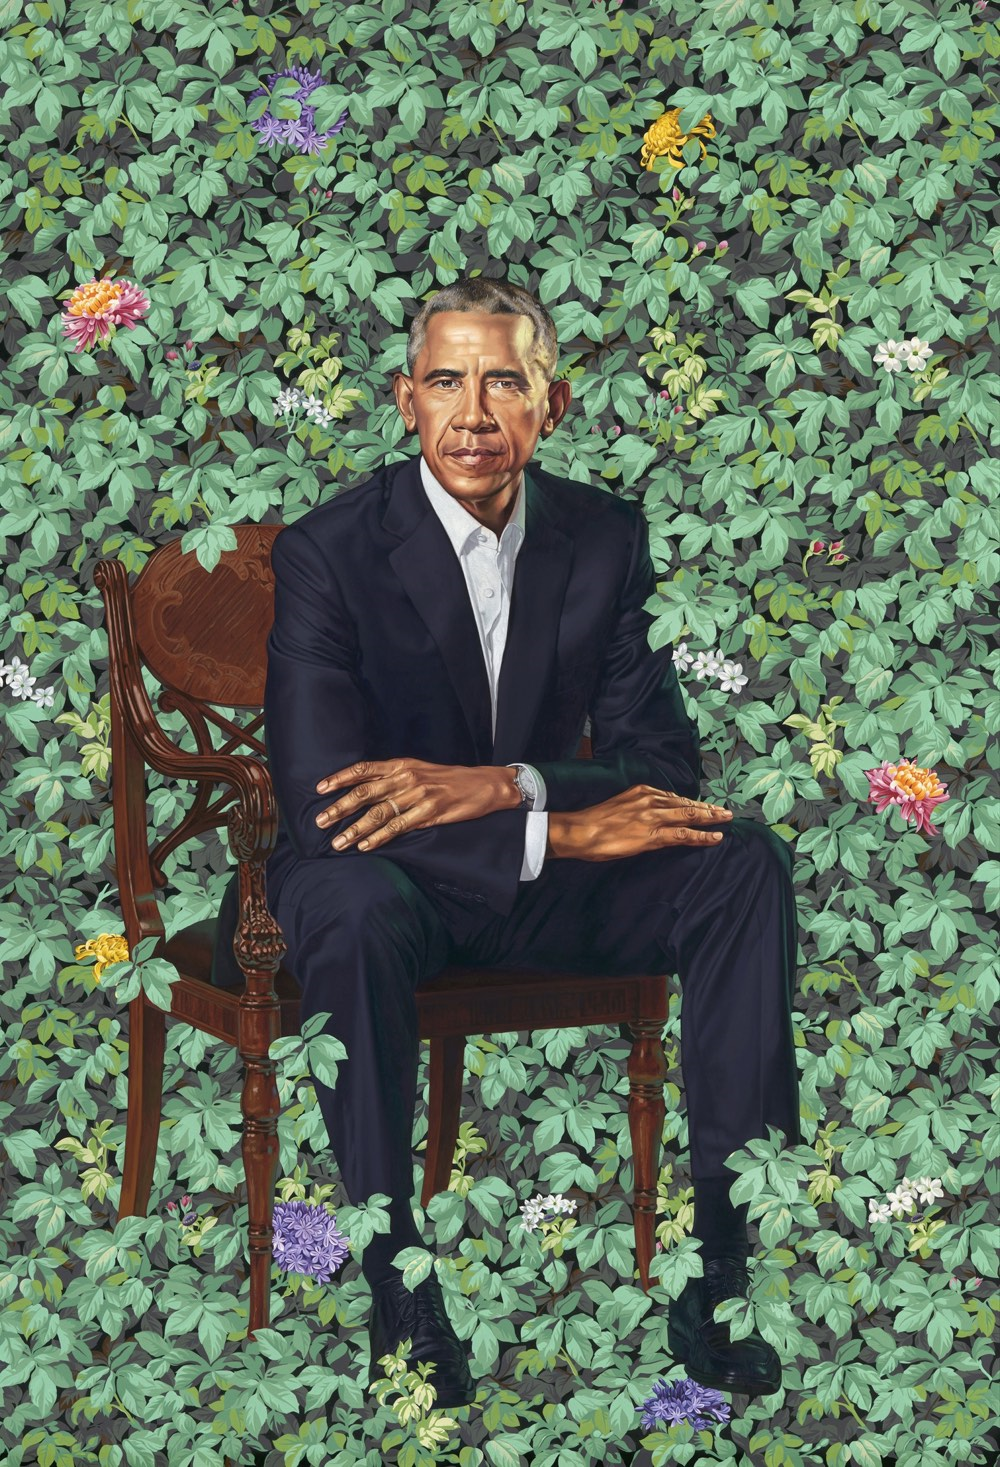 image-711394-Barack_Obama_Official_Potrait_Update.w640.png